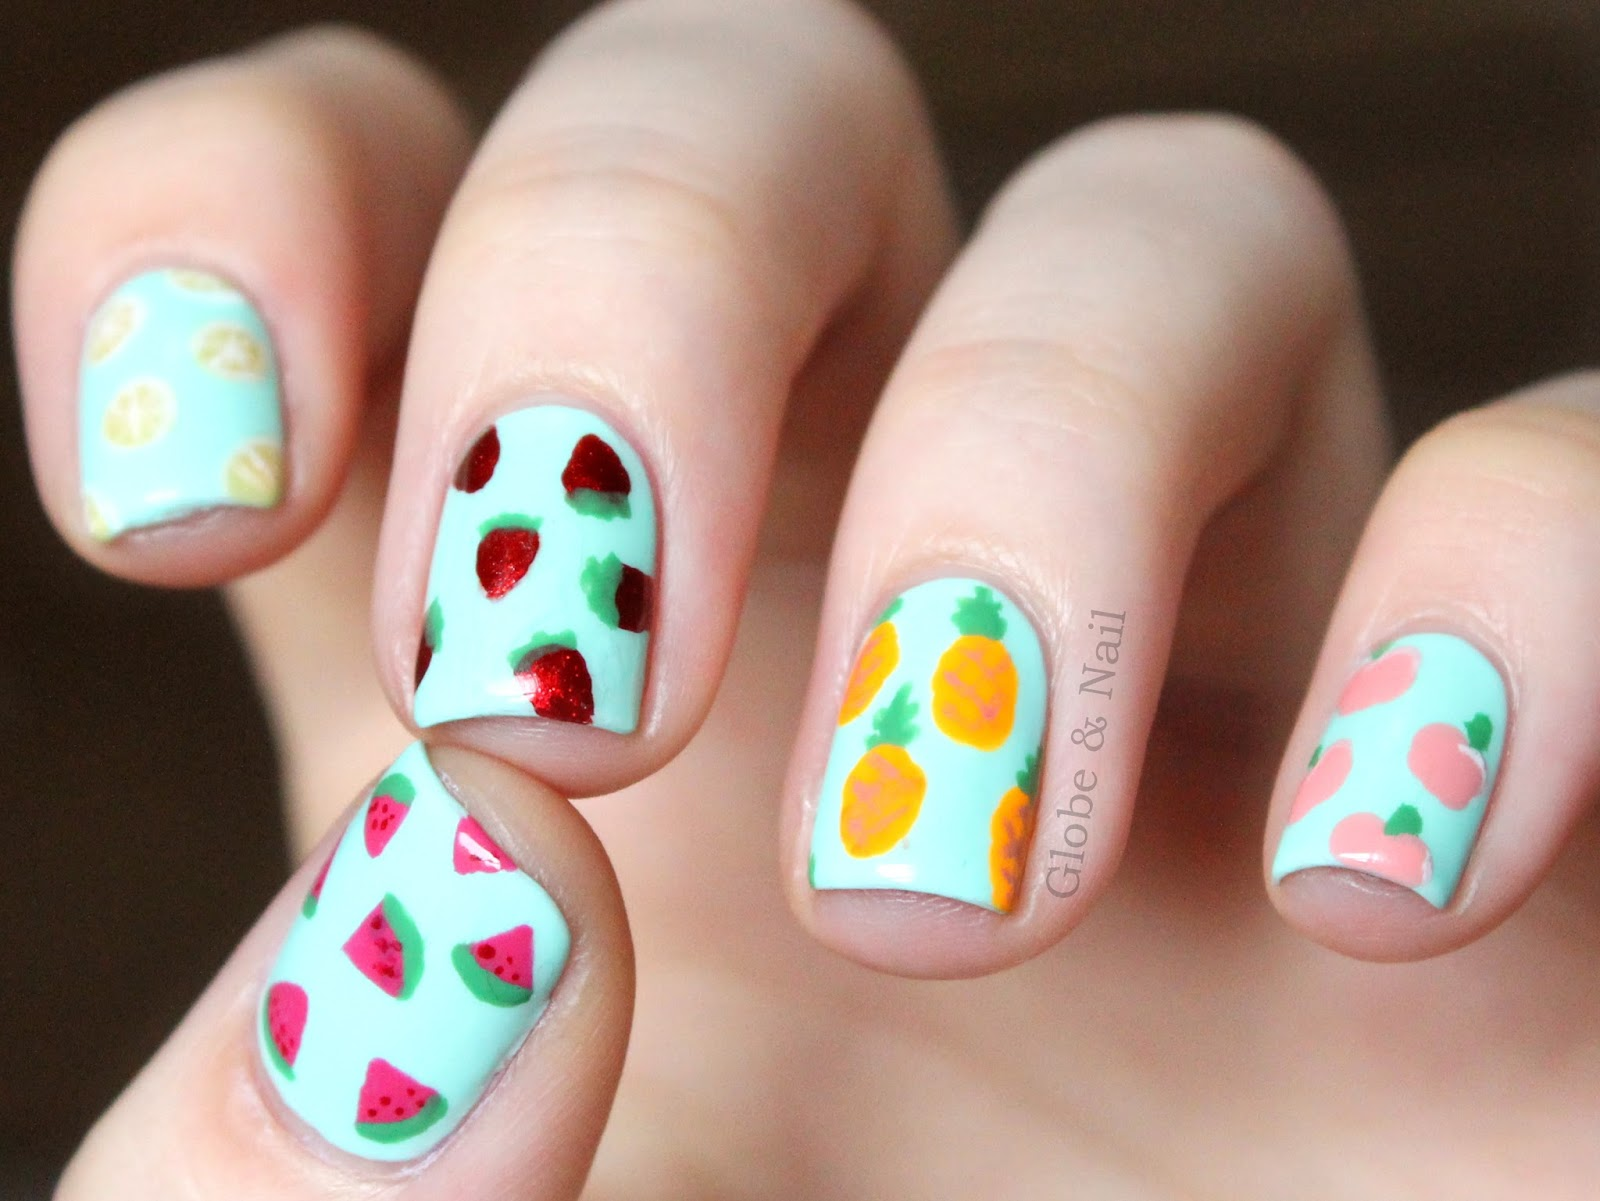 Fruity nails!